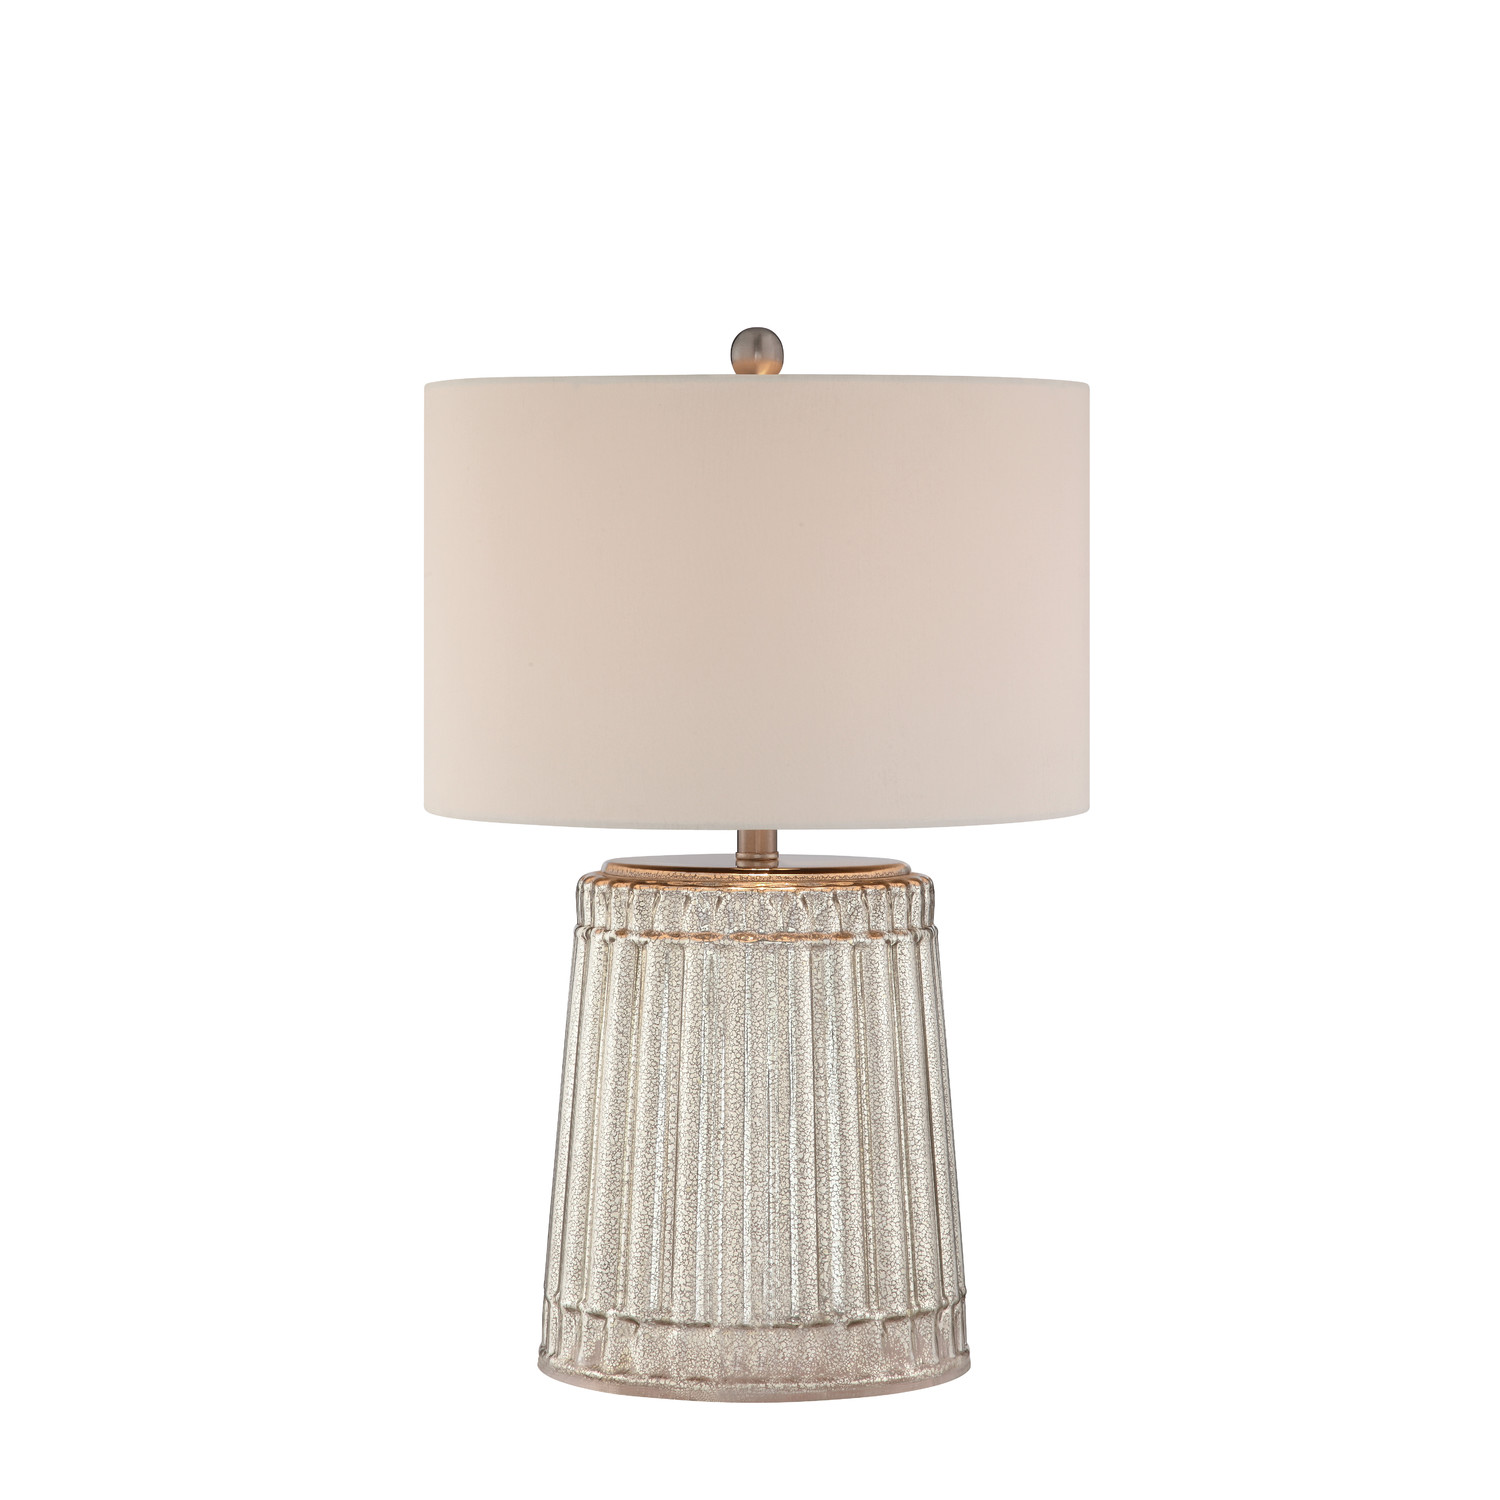 Gorgeous 3 Way Table Lamps In Attractive Design And Modern White Drum Shade